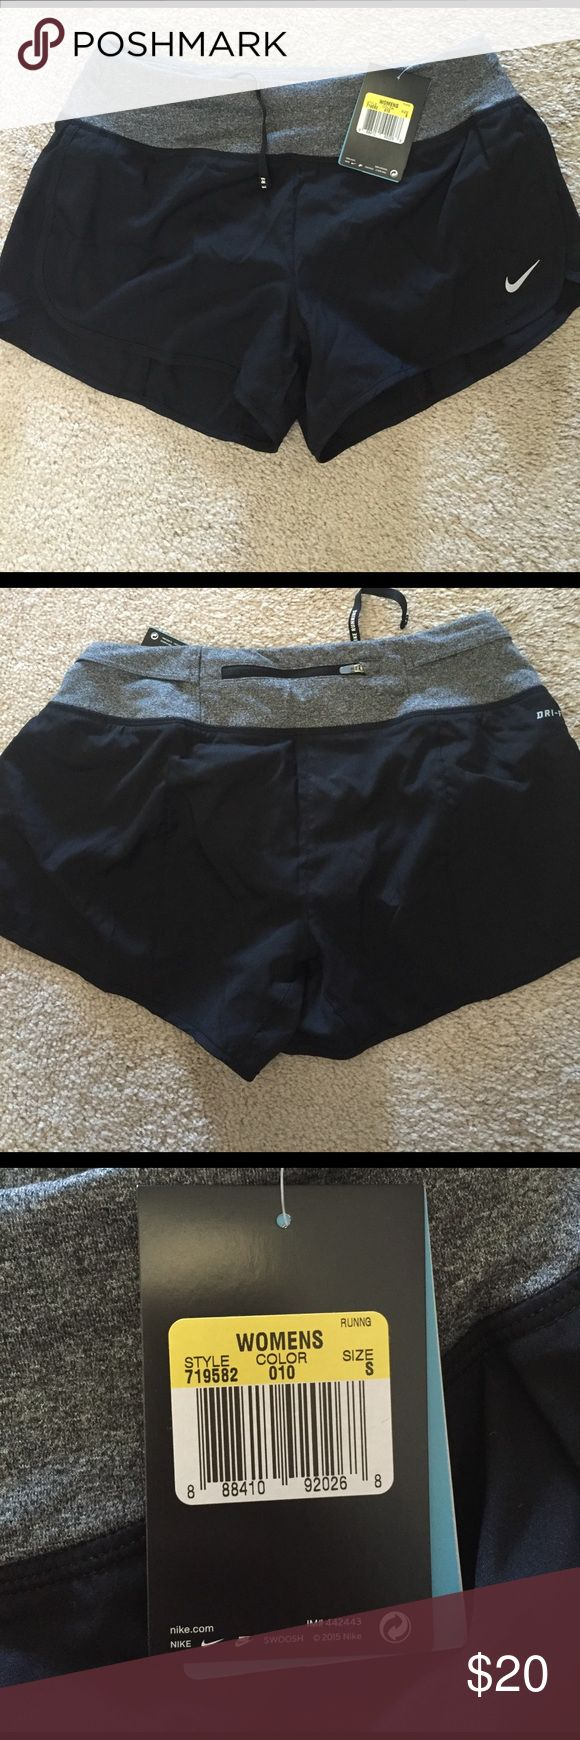 Nike Flex Running Shorts These are Nike flex running shorts. Brand new with tags. I bought them off here and I don't like them. They are size small Nike Shorts